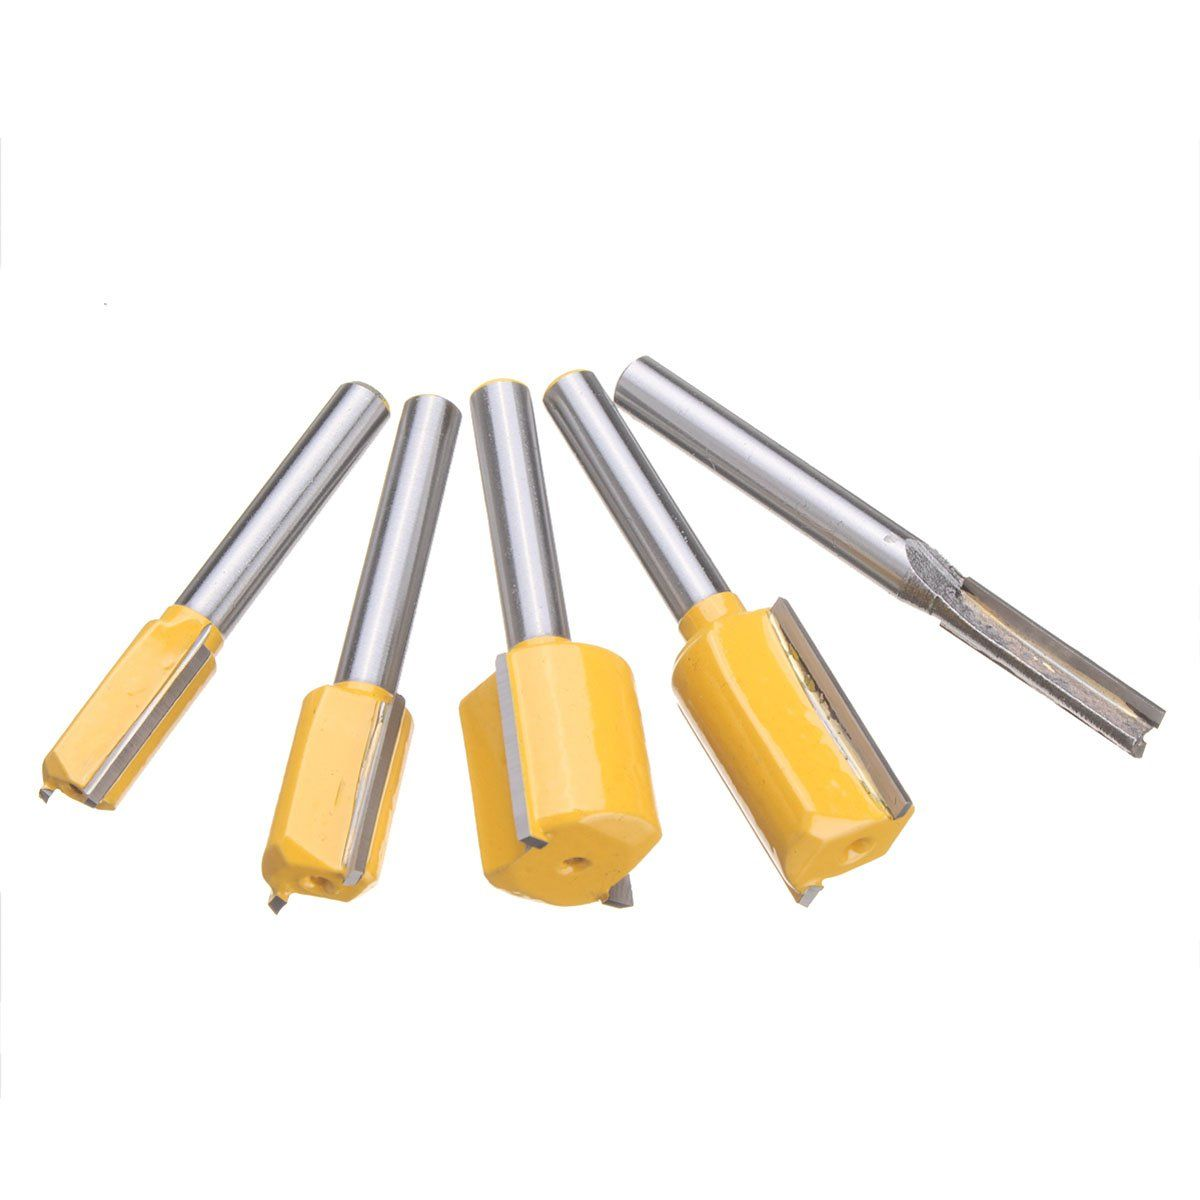 Pukido 5pcs 1 4 Inch Shank Straight And Dado Router Bit Set Trimming 22mm Printed Circuit Board Cutter Pcb Cnc Carbide Cutting For